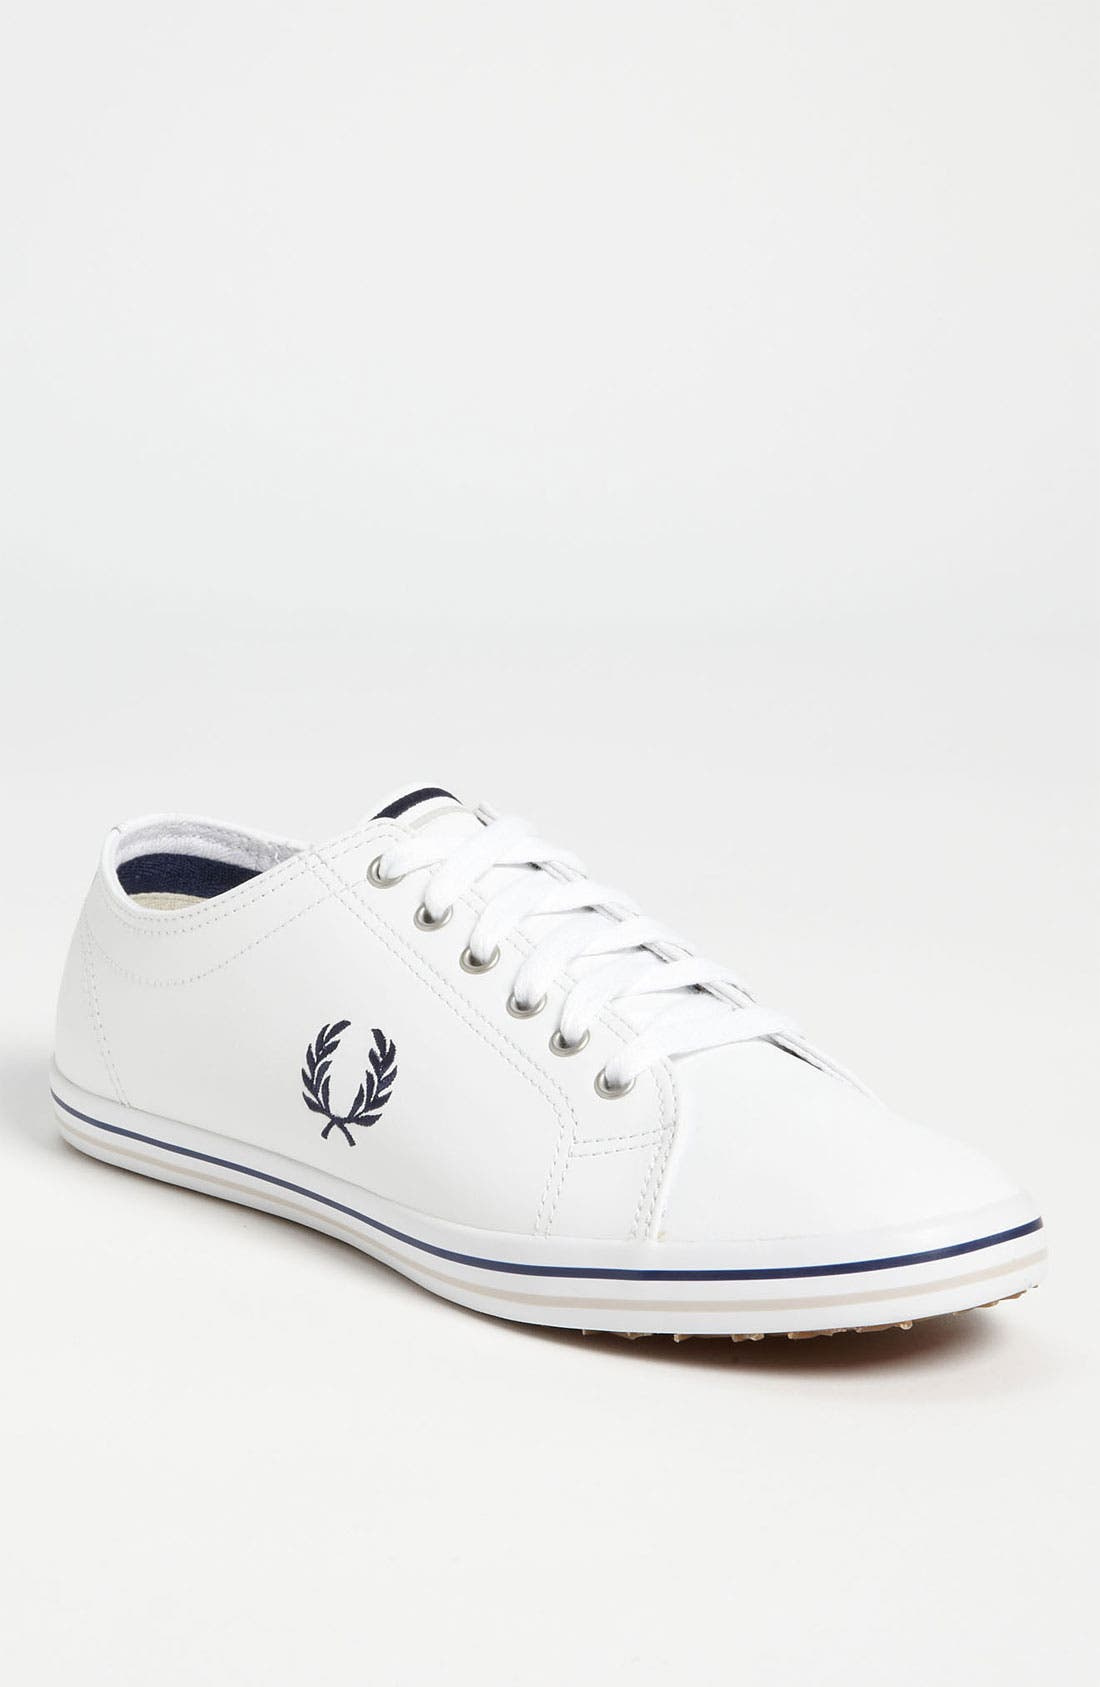 Alternate Image 1 Selected - Fred Perry 'Kingston' Sneaker